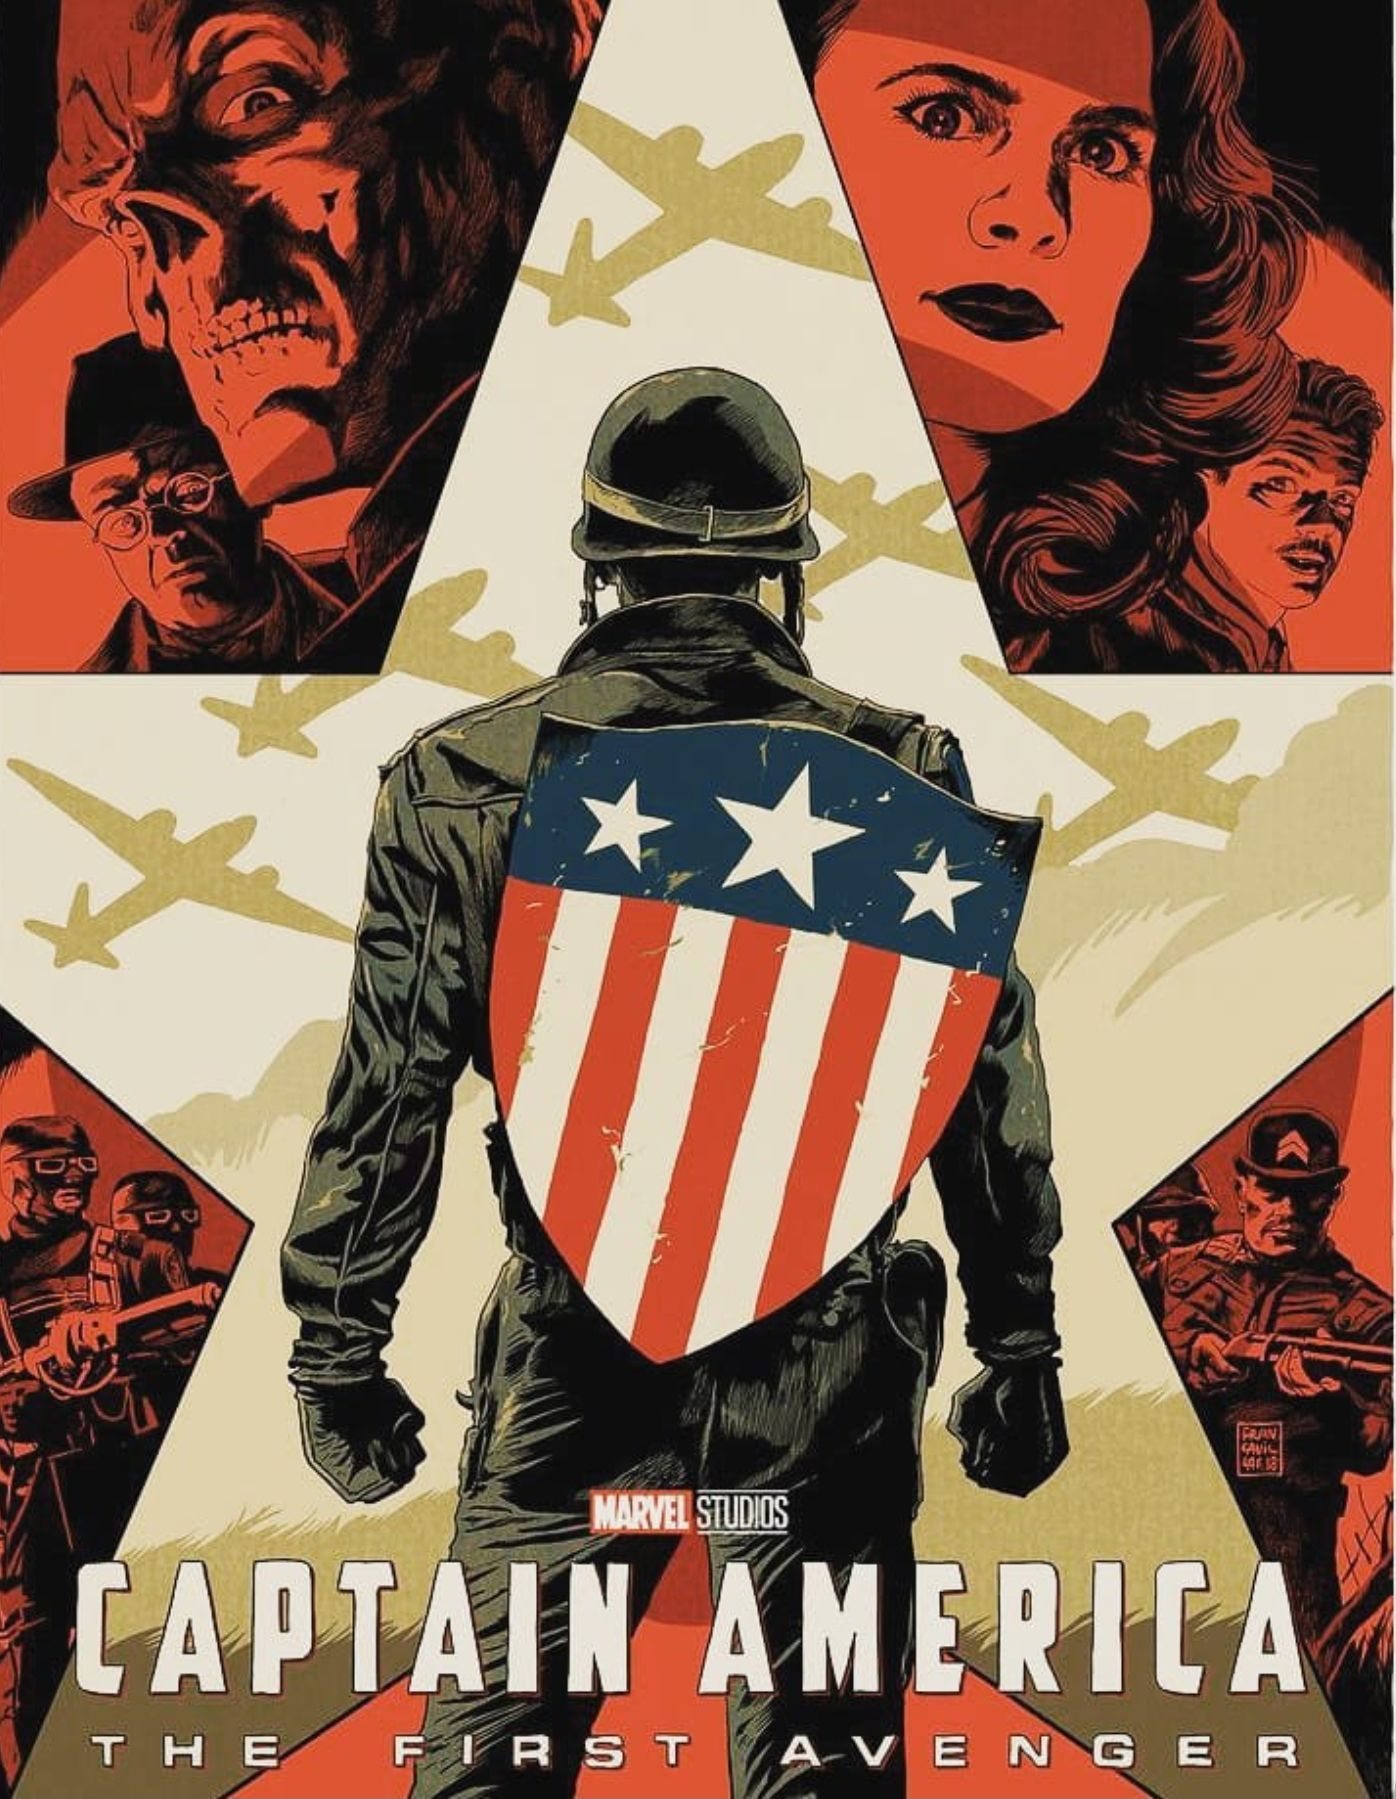 Fan Poster For Captain America The First Avenger 2011 Avengers Poster Captain America Poster Marvel Movie Posters